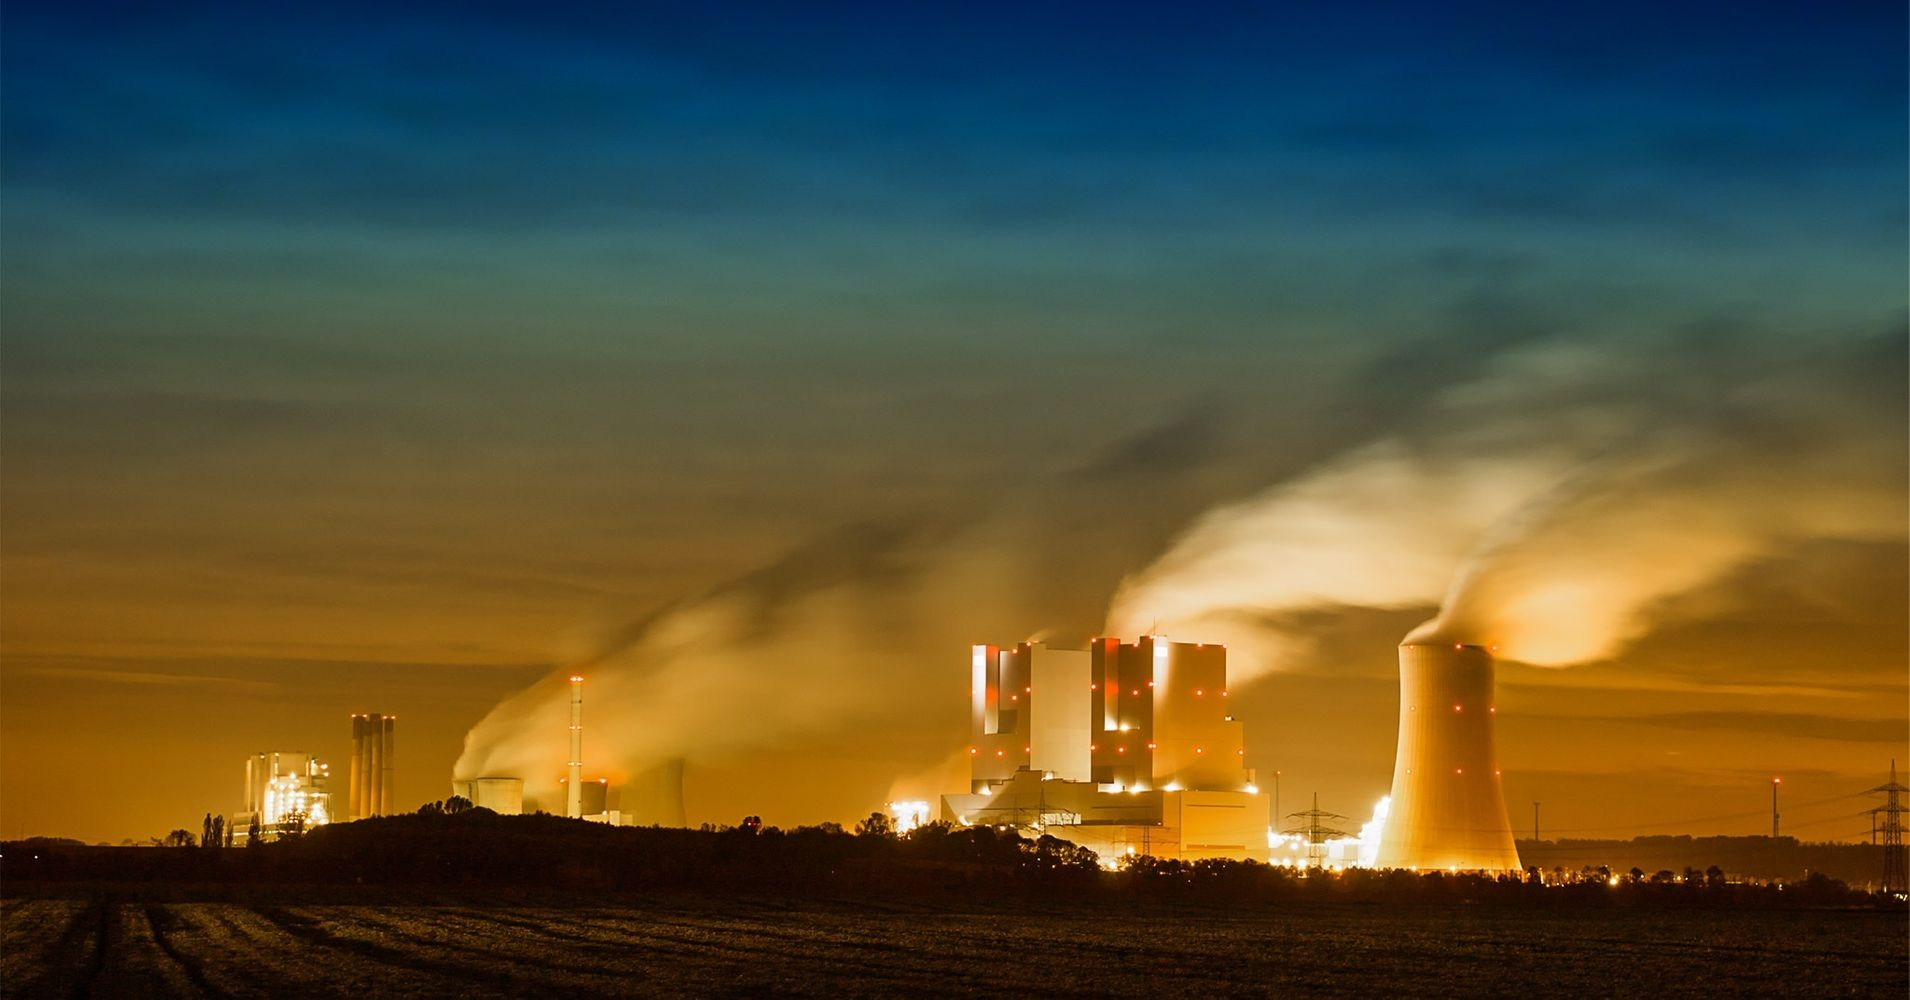 green laws boost clean up industry essay So it is strange how little talk there has been of the green laws at the conference legal targets to finally clean up the polluted air in our cities could, if effective, be transformative, but.